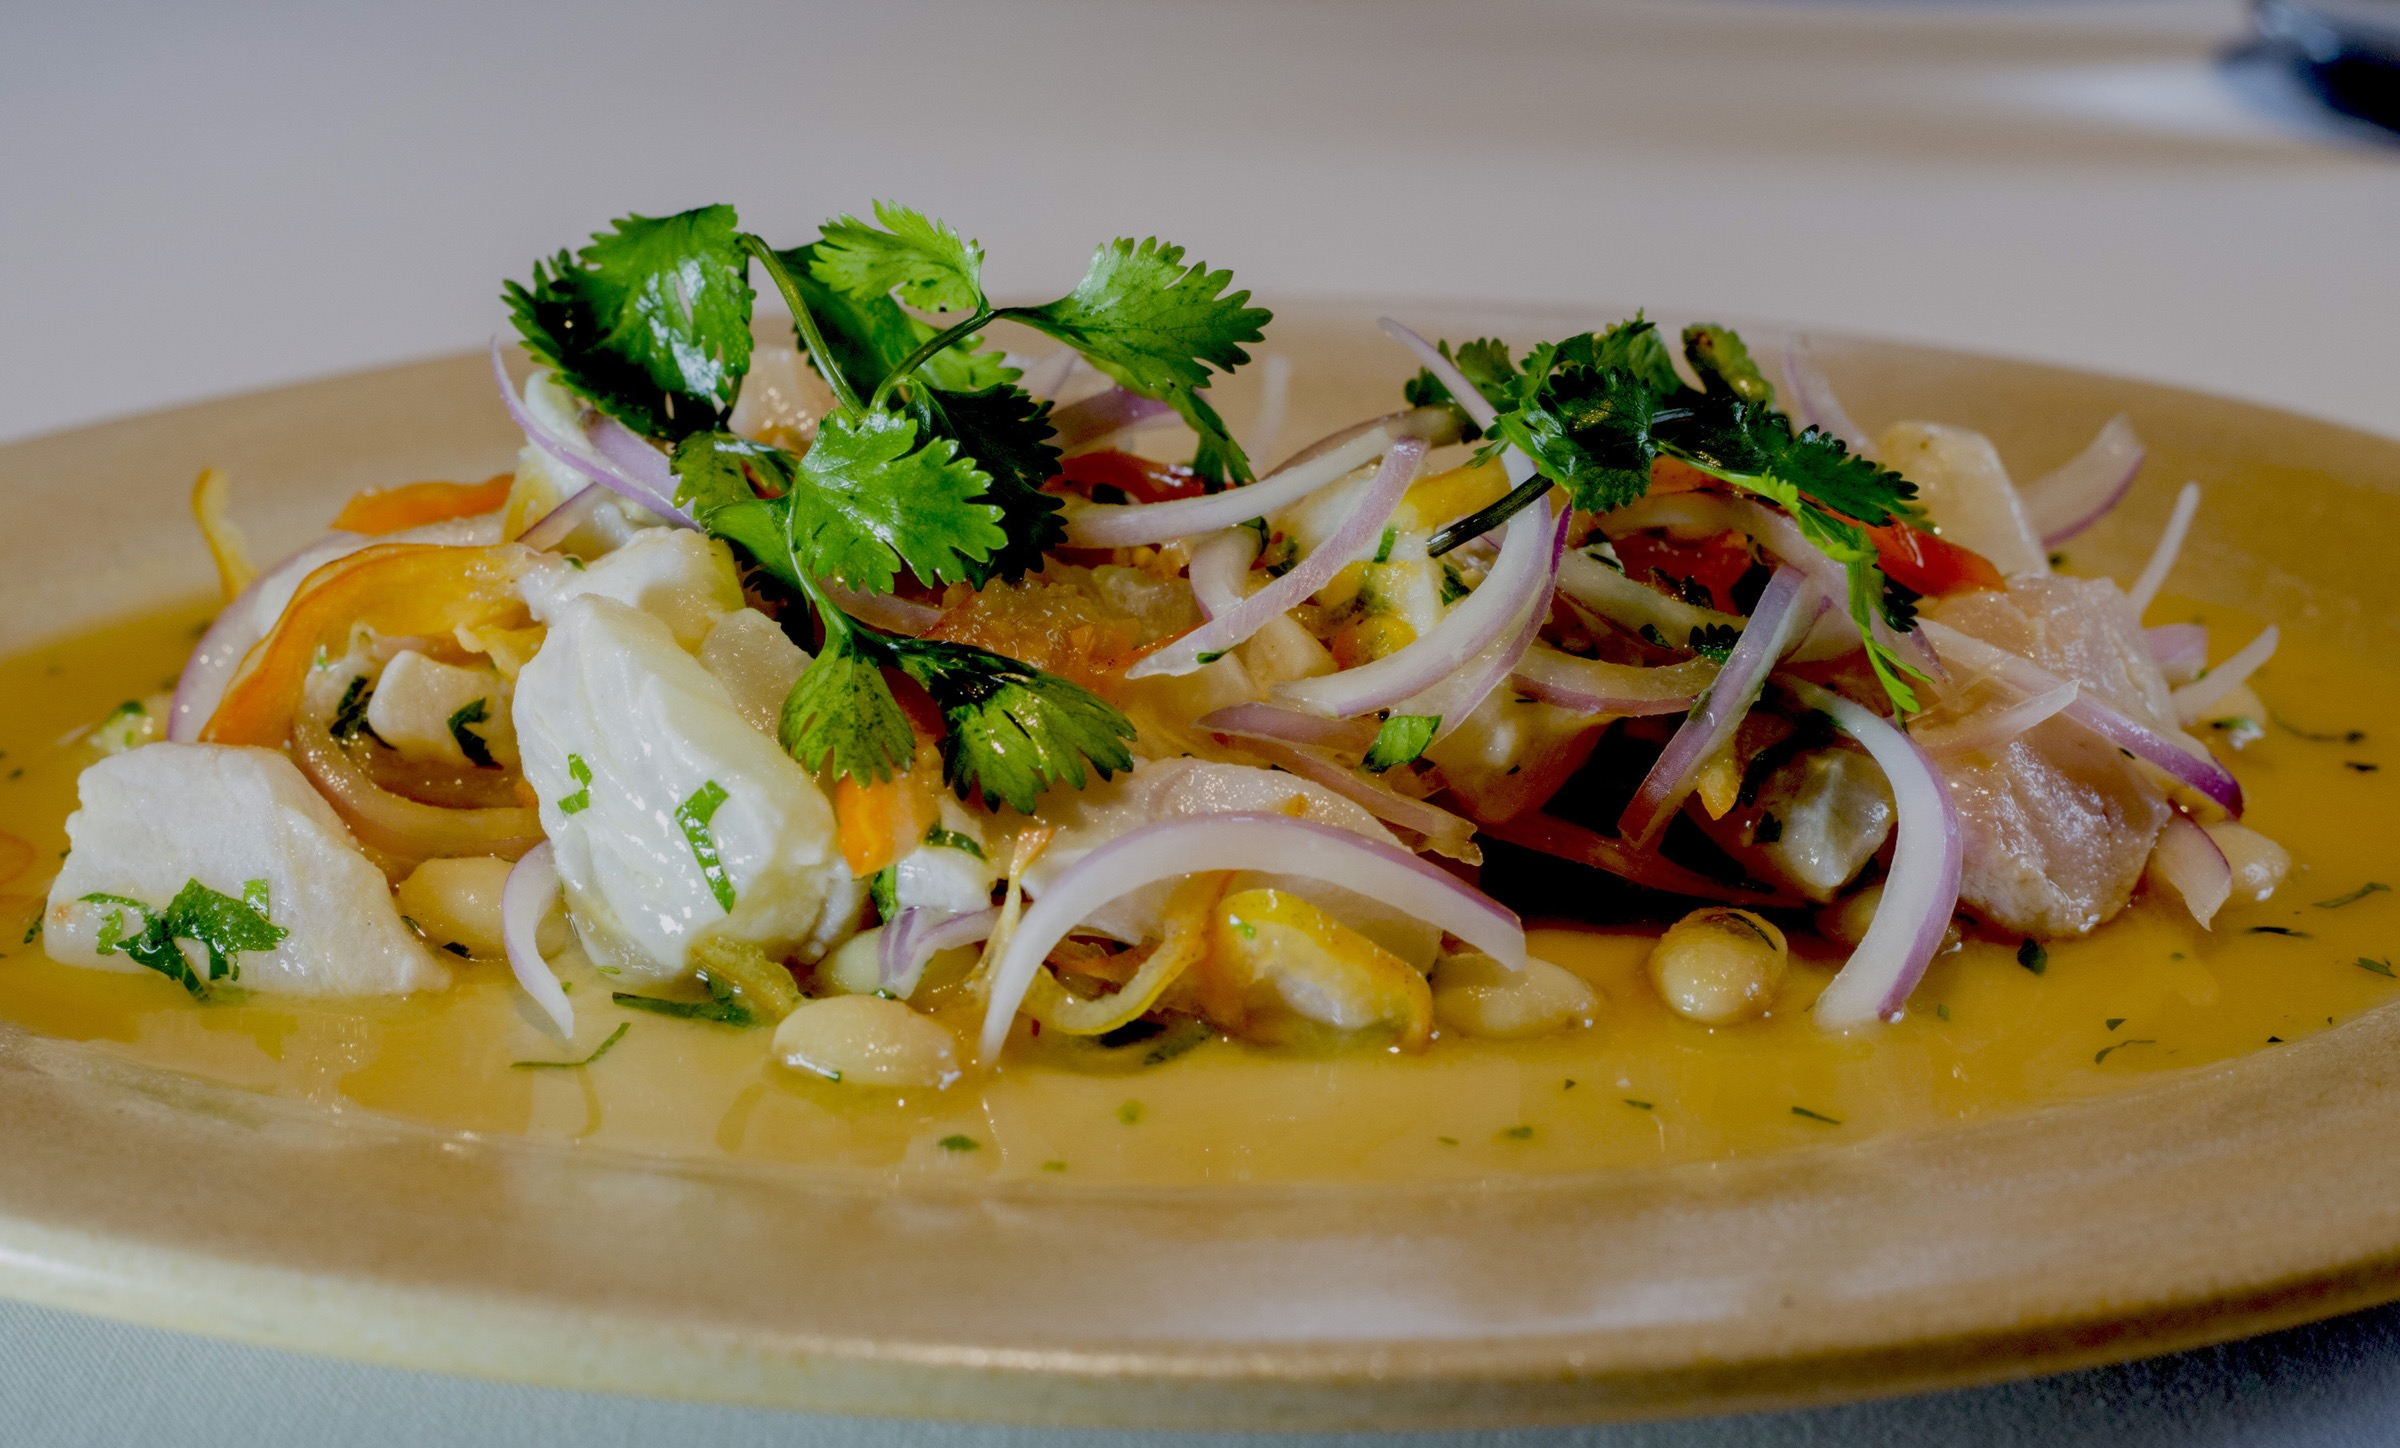 Malabar's ceviche featured tumbo, a tart, acidic fruit similar to passionfruit, rather than the traditional lime or lemon.